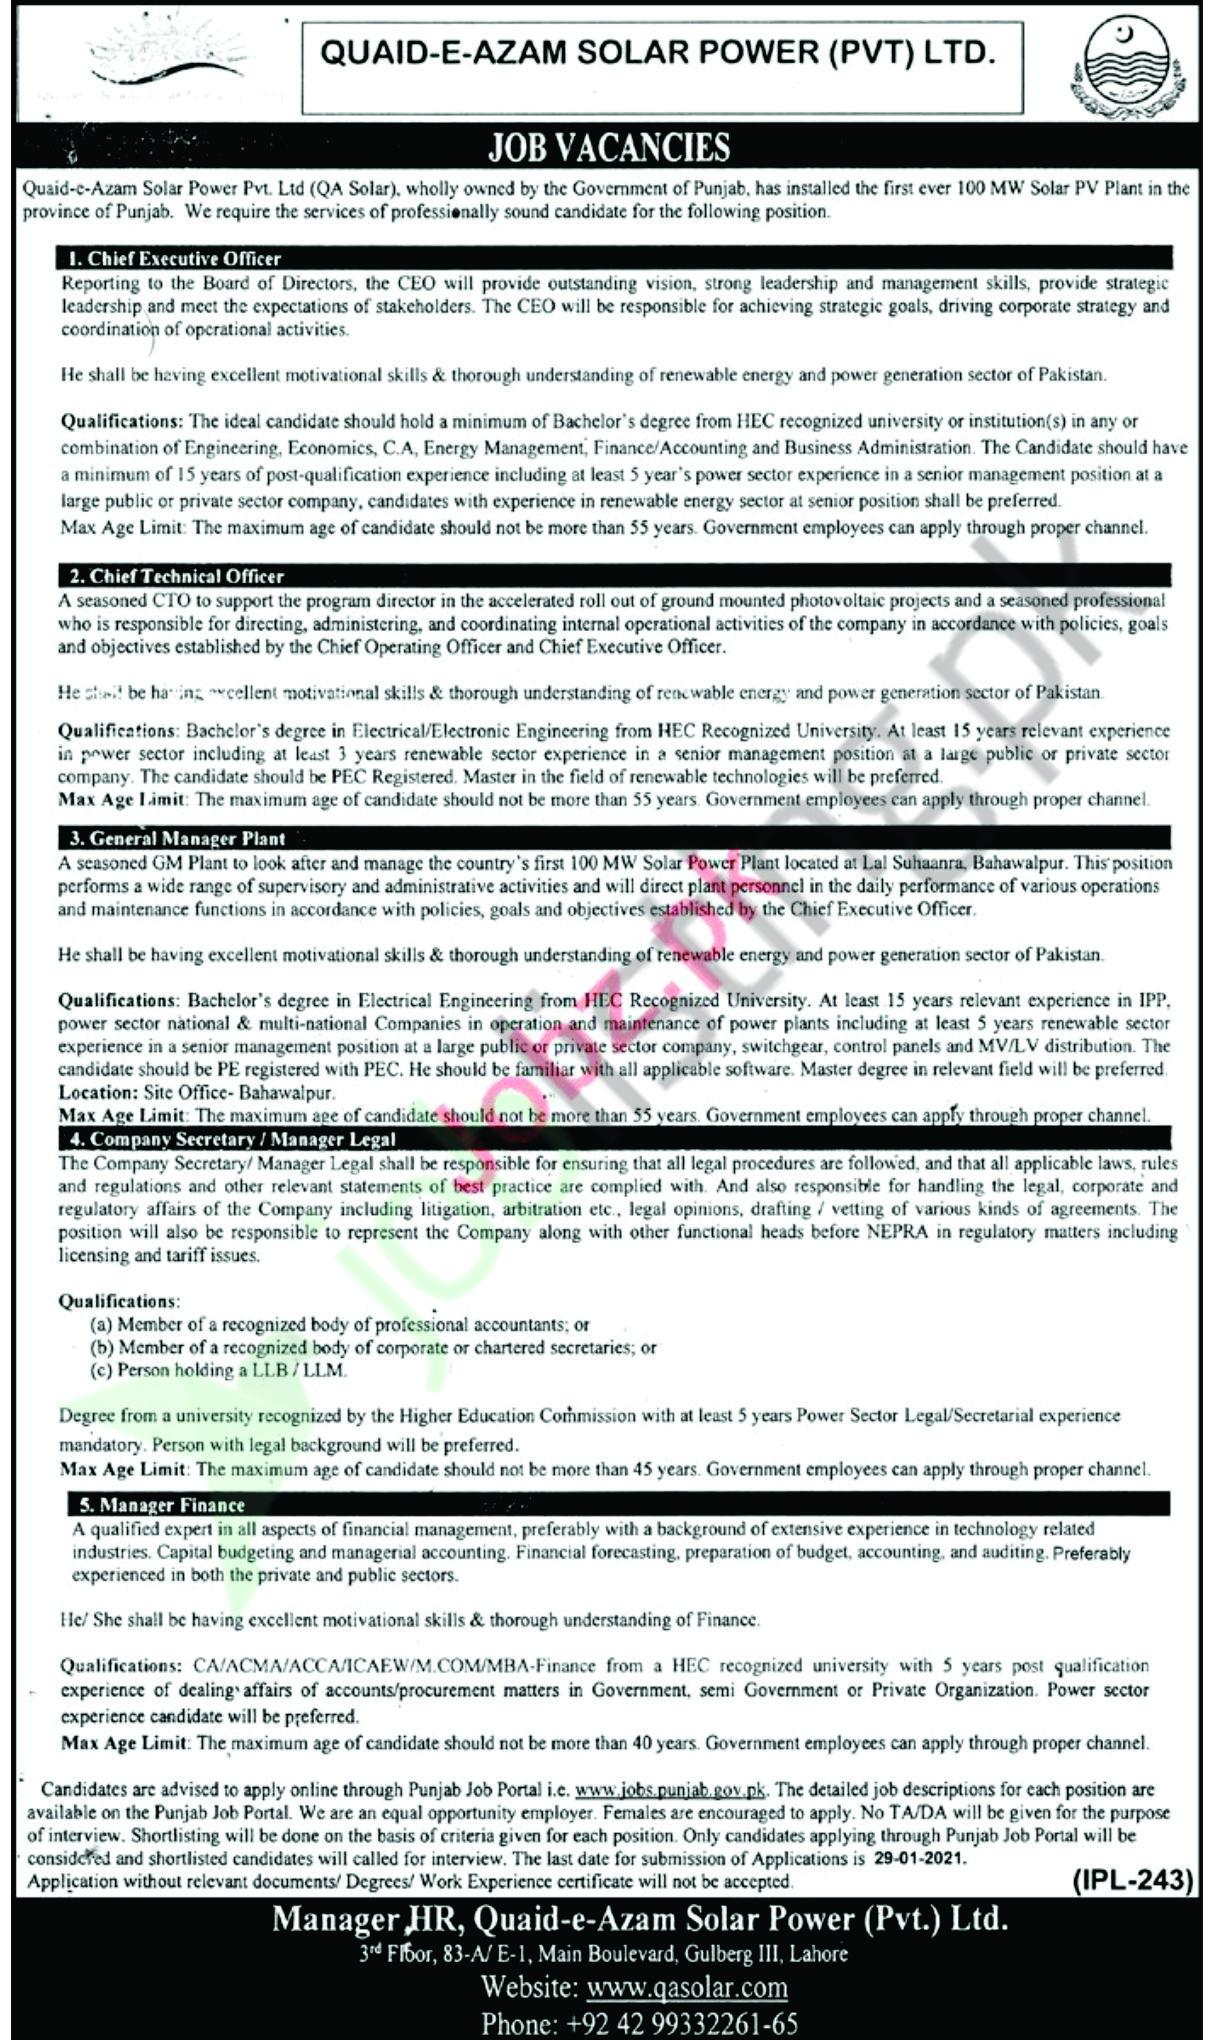 Quaid E Azam Solar Power Pvt Limited Jobs 2021 in Pakistan